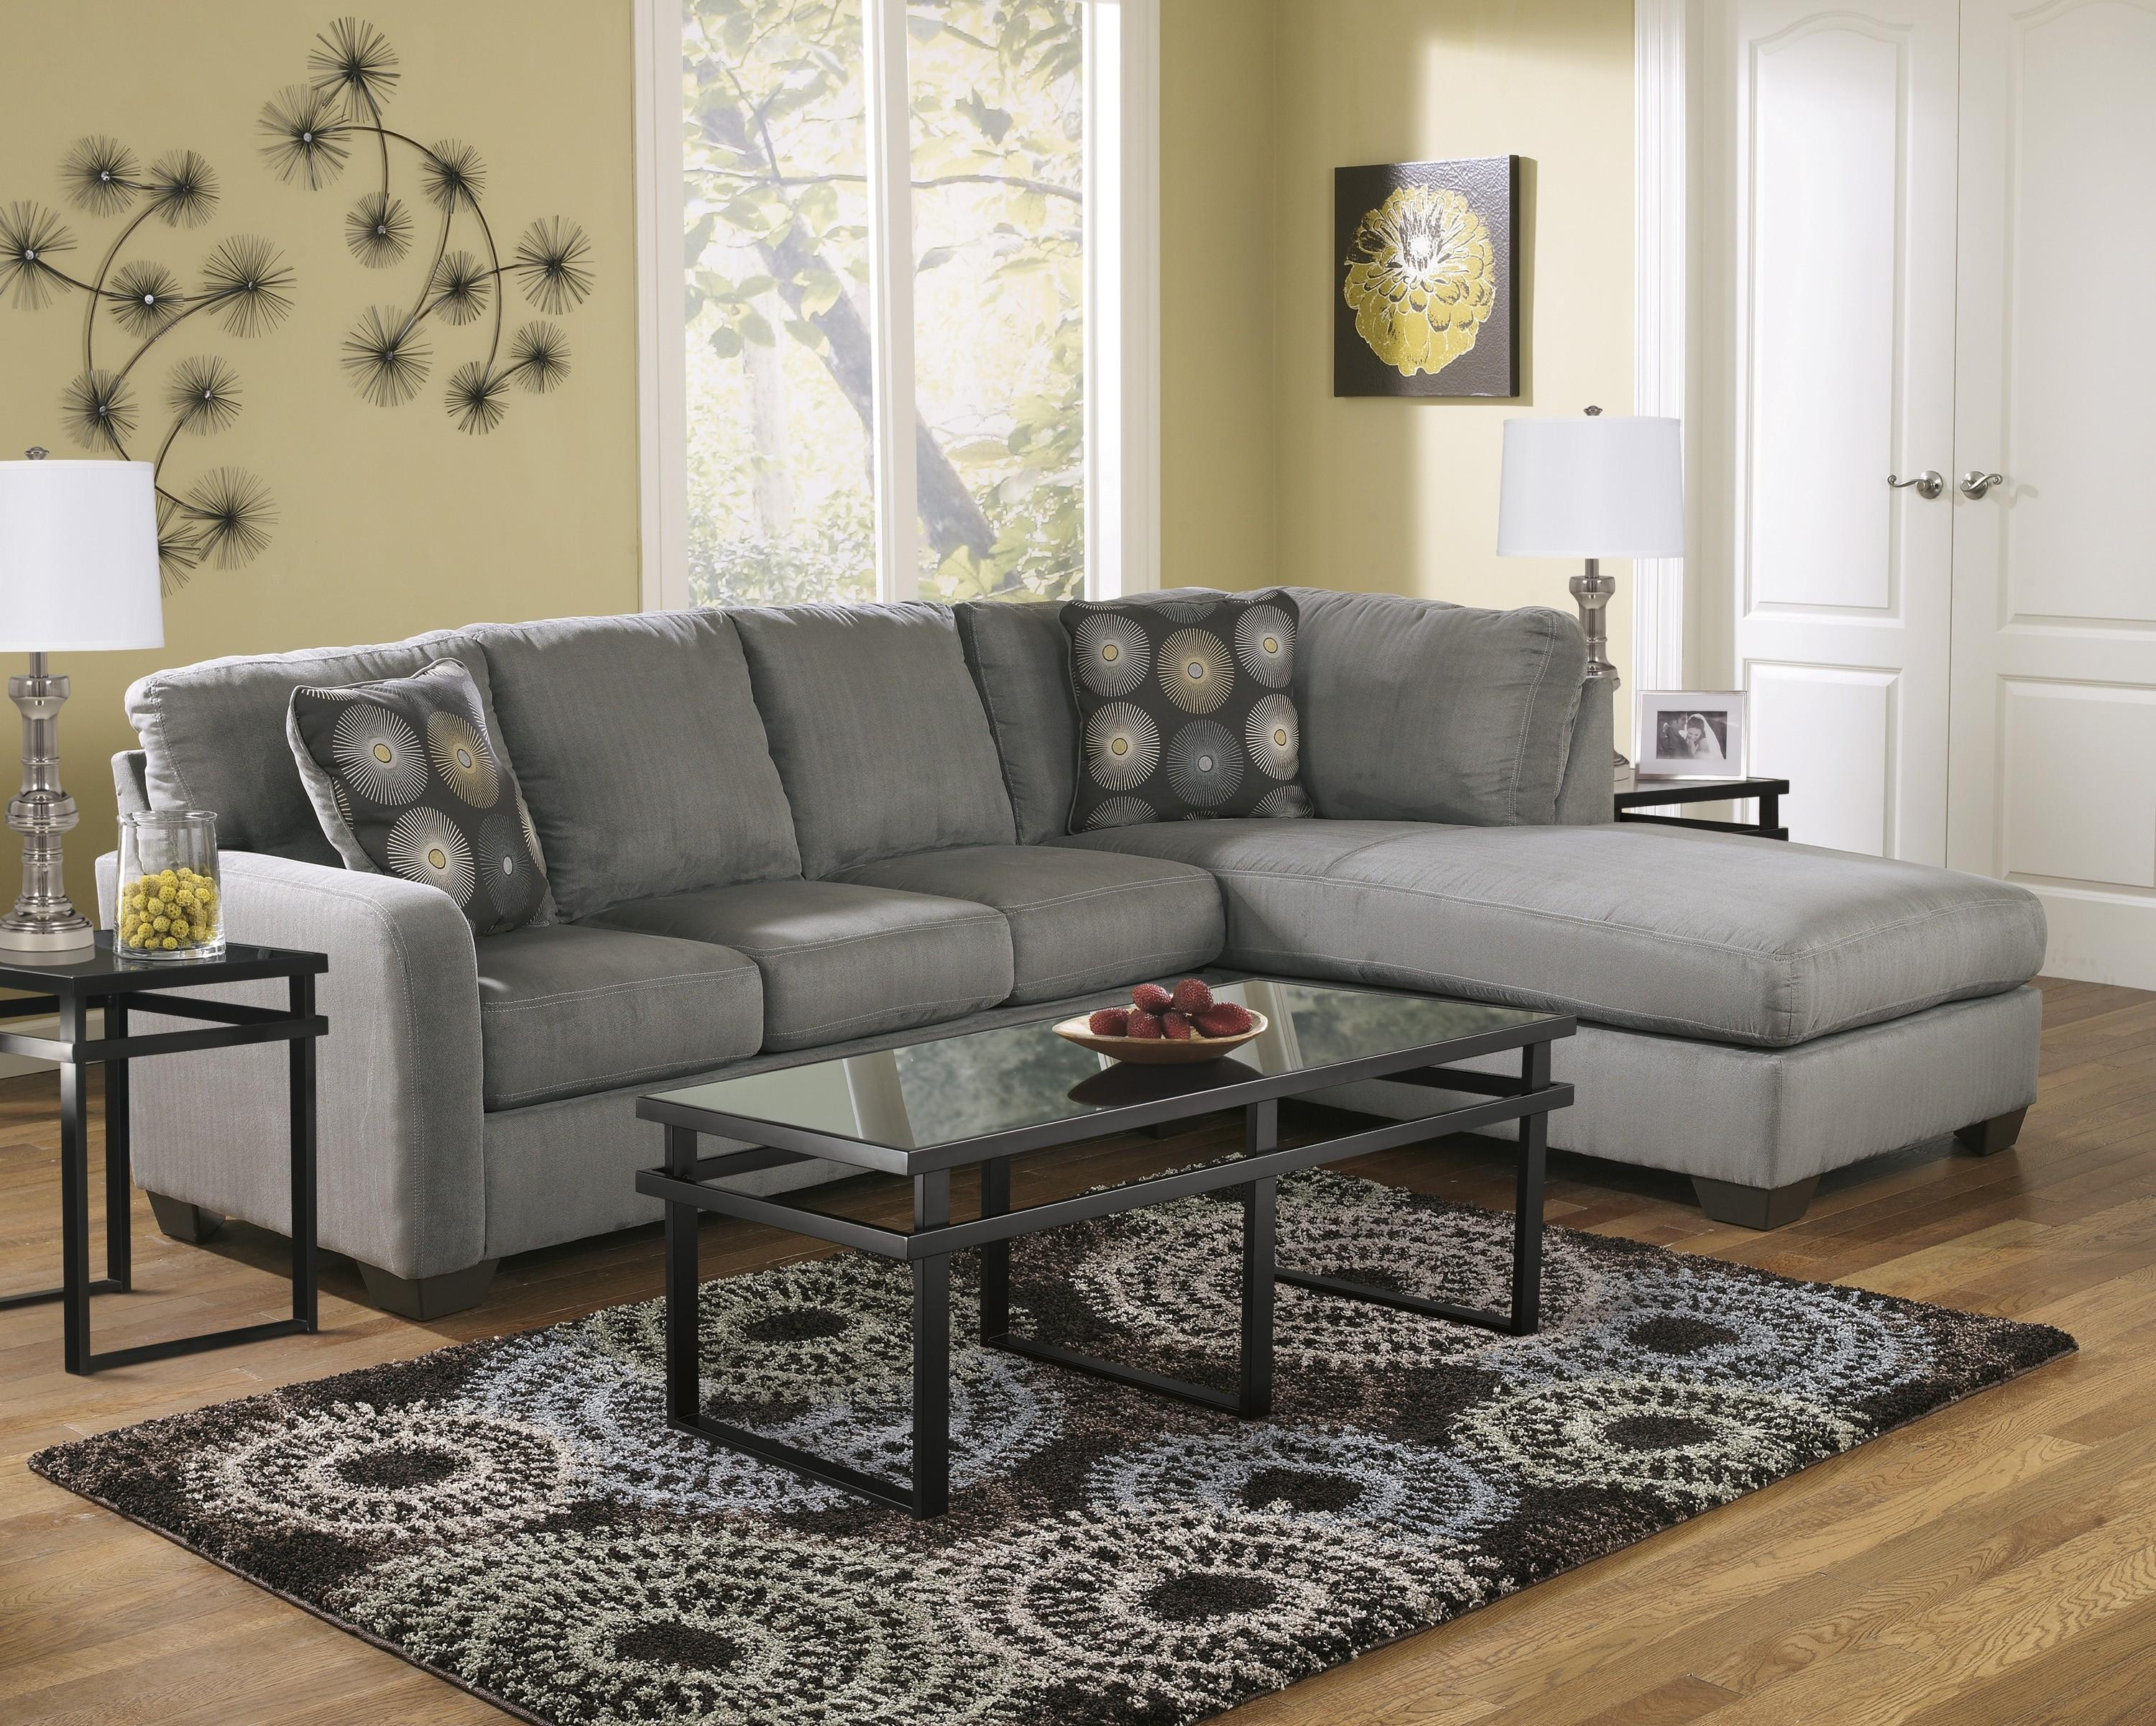 Zella Charcoal 2 Piece Sectional Sofa For $ (Image 23 of 23)